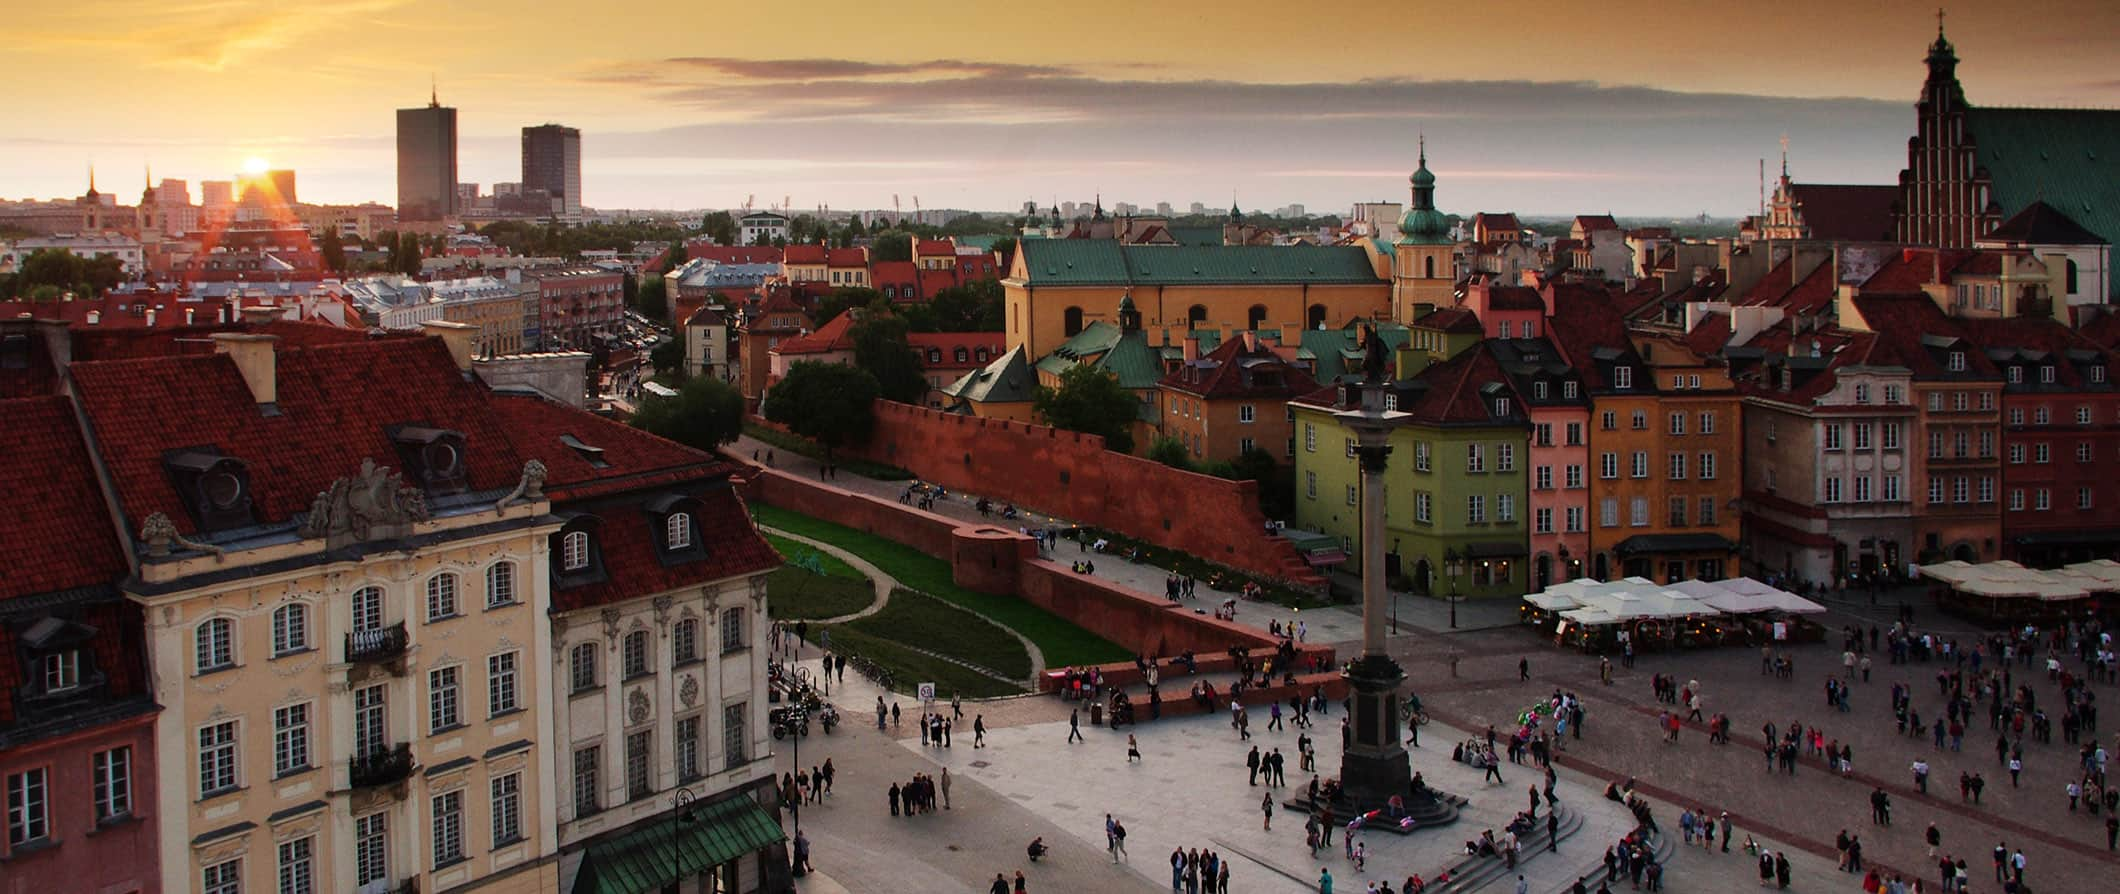 sunset view over Warsaw, Poland